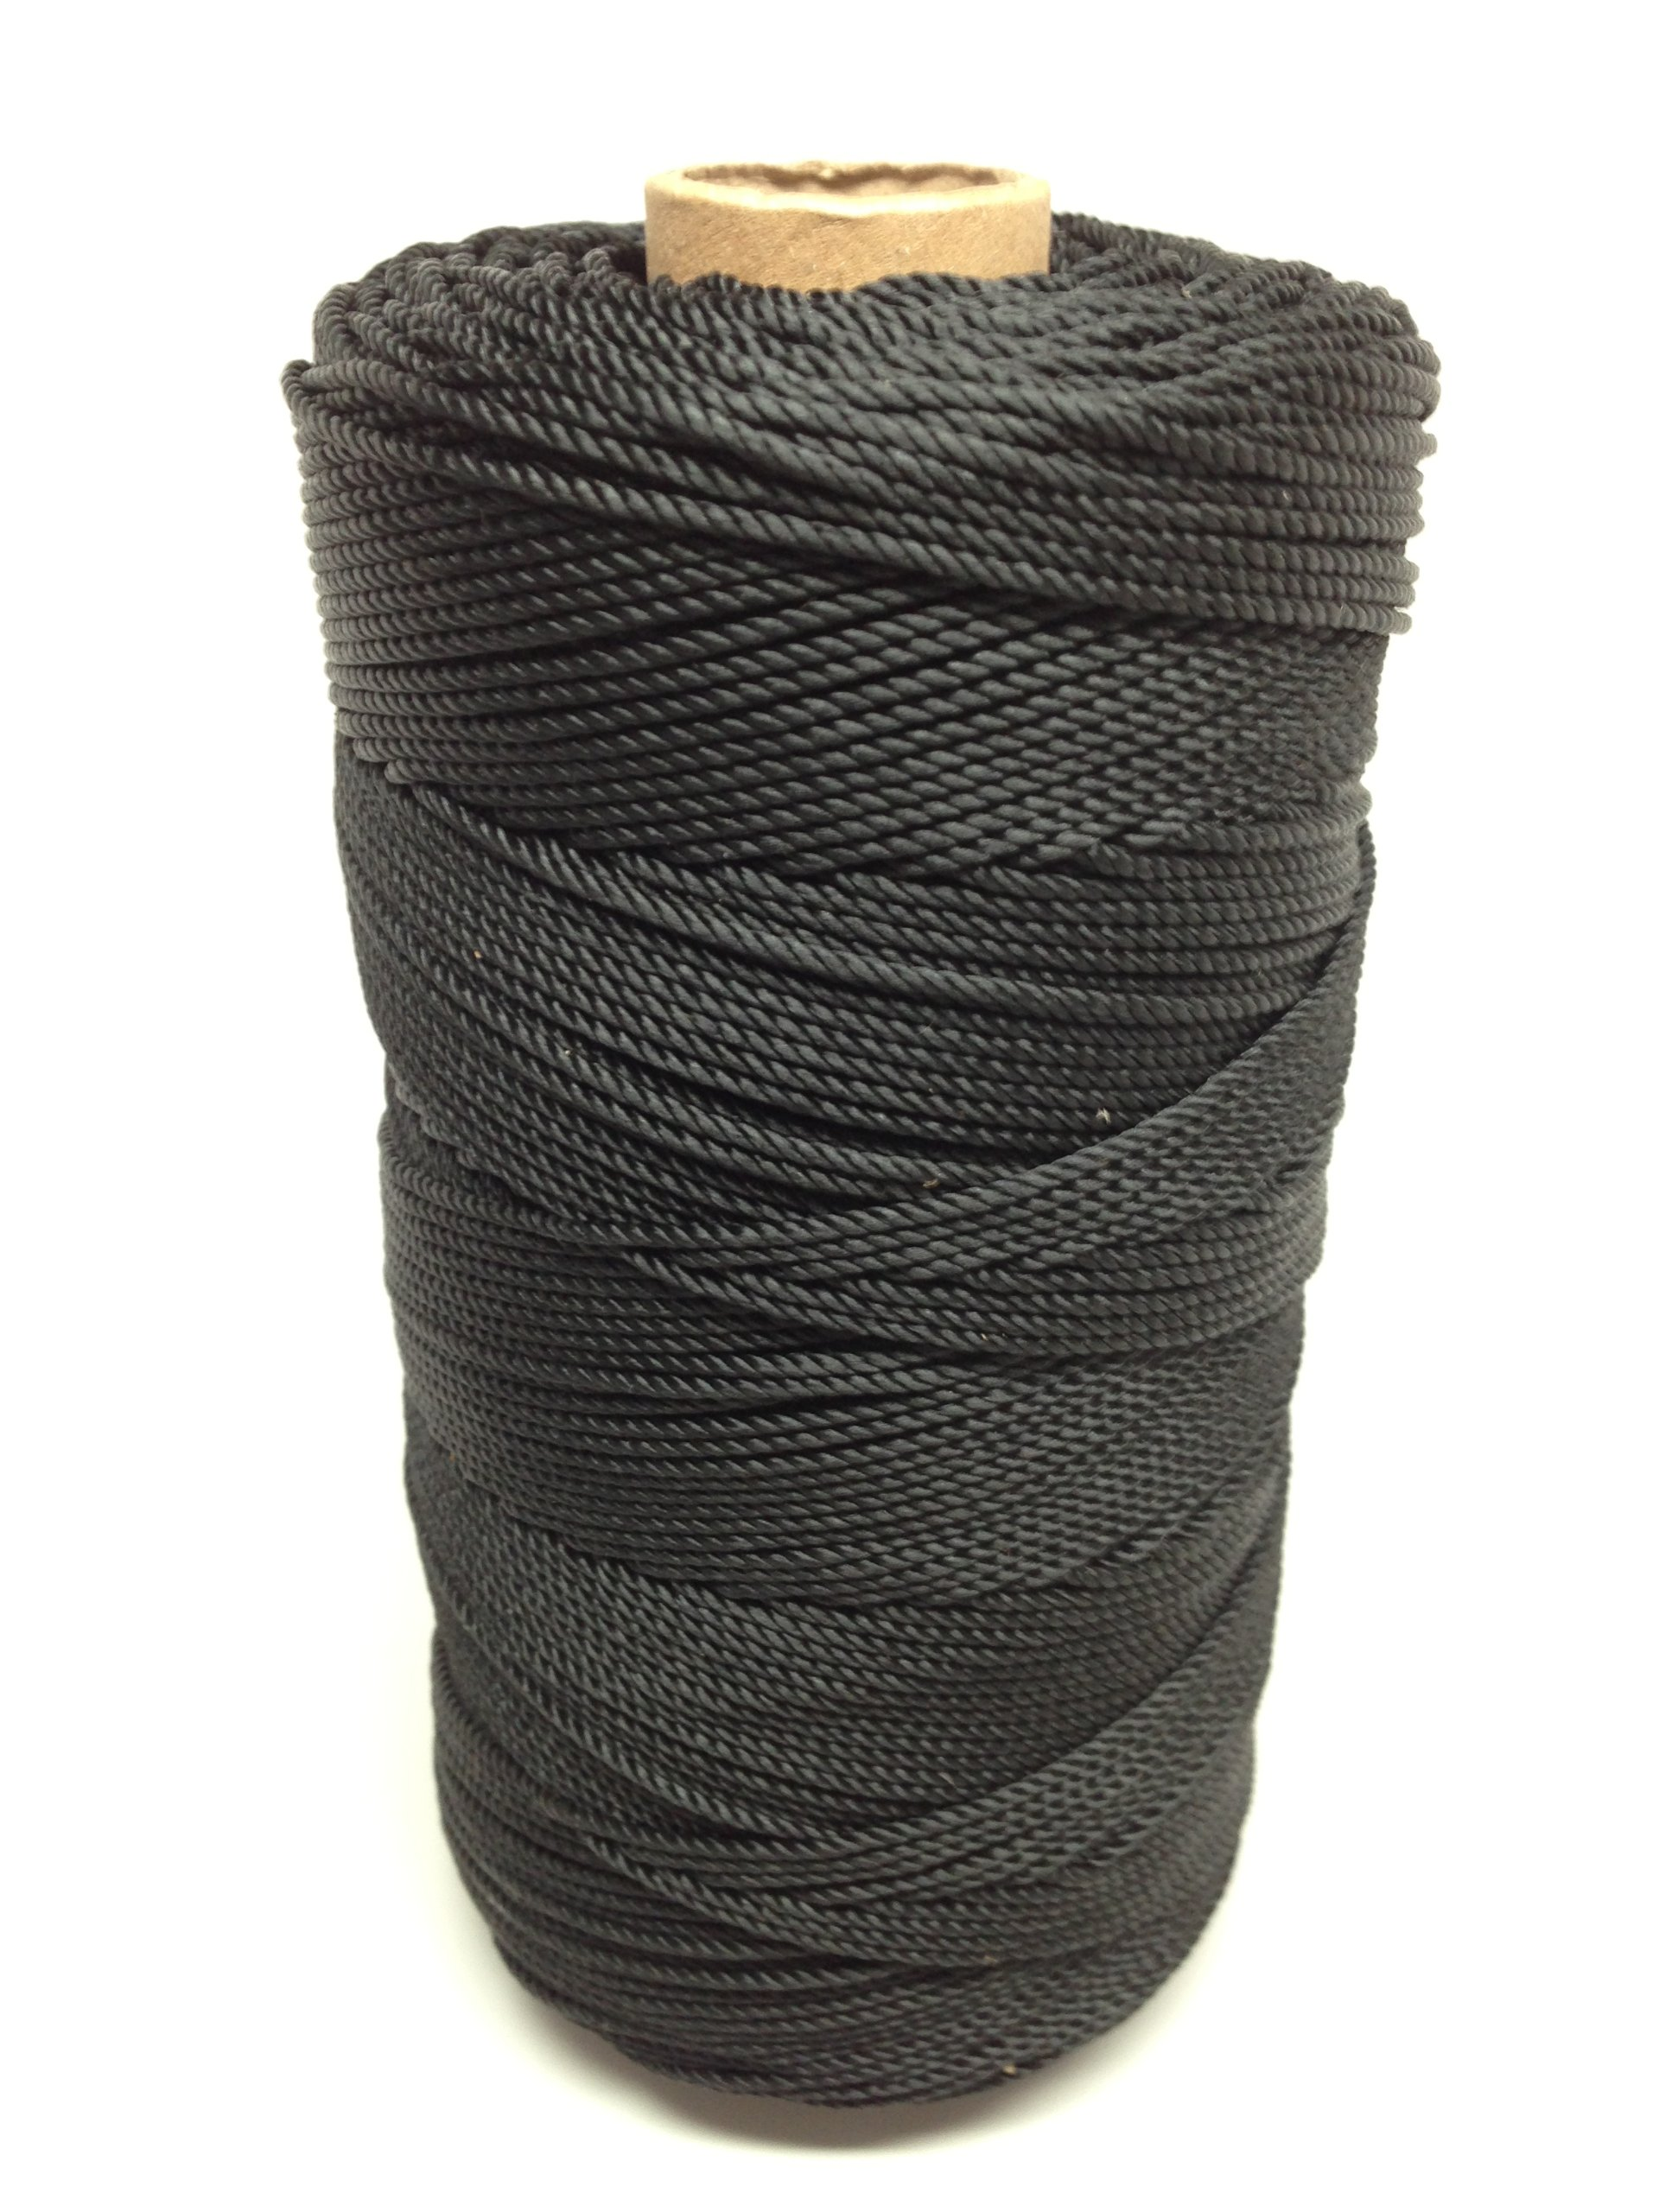 SGT KNOTS Tarred Twine #18 Durable Bank Line - 1 Pound - Moisture, UV, Abrasions Resistant - for Gear Bundles, Crafting, Tie-Down, Home Improvement, Landscaping, Construction (1000 feet)